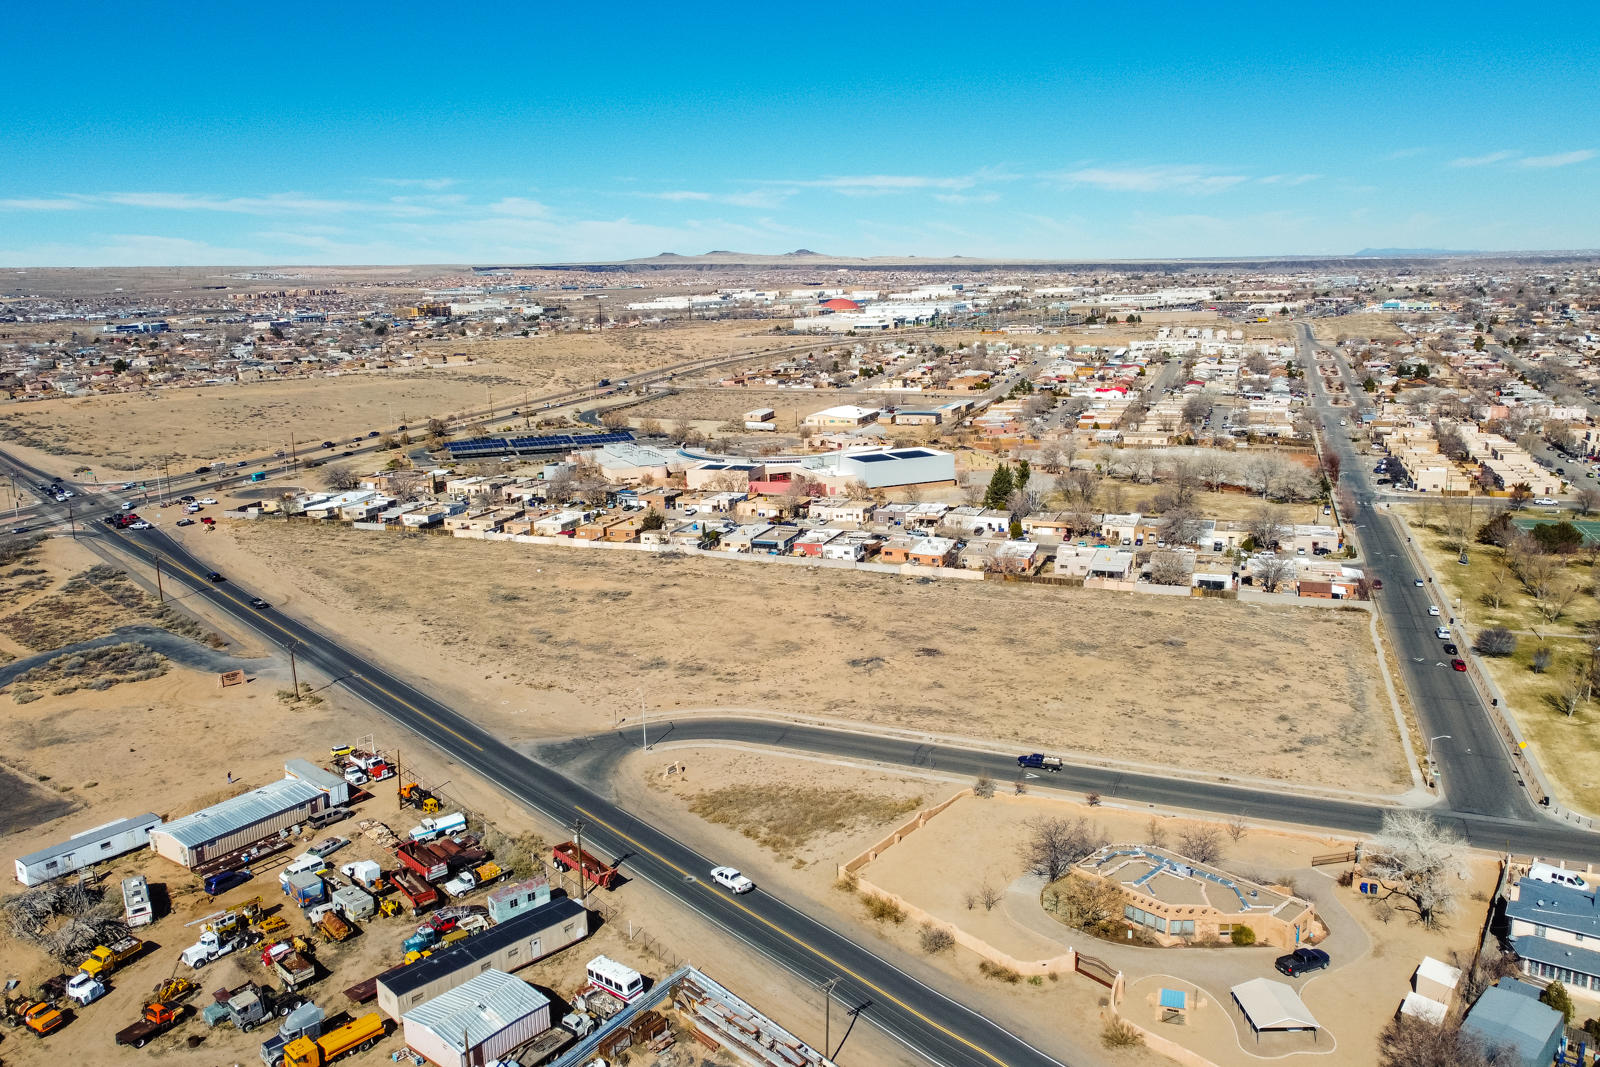 Bridge / Coors Blvd SW, Albuquerque, NM 87121 - Albuquerque, NM real estate listing